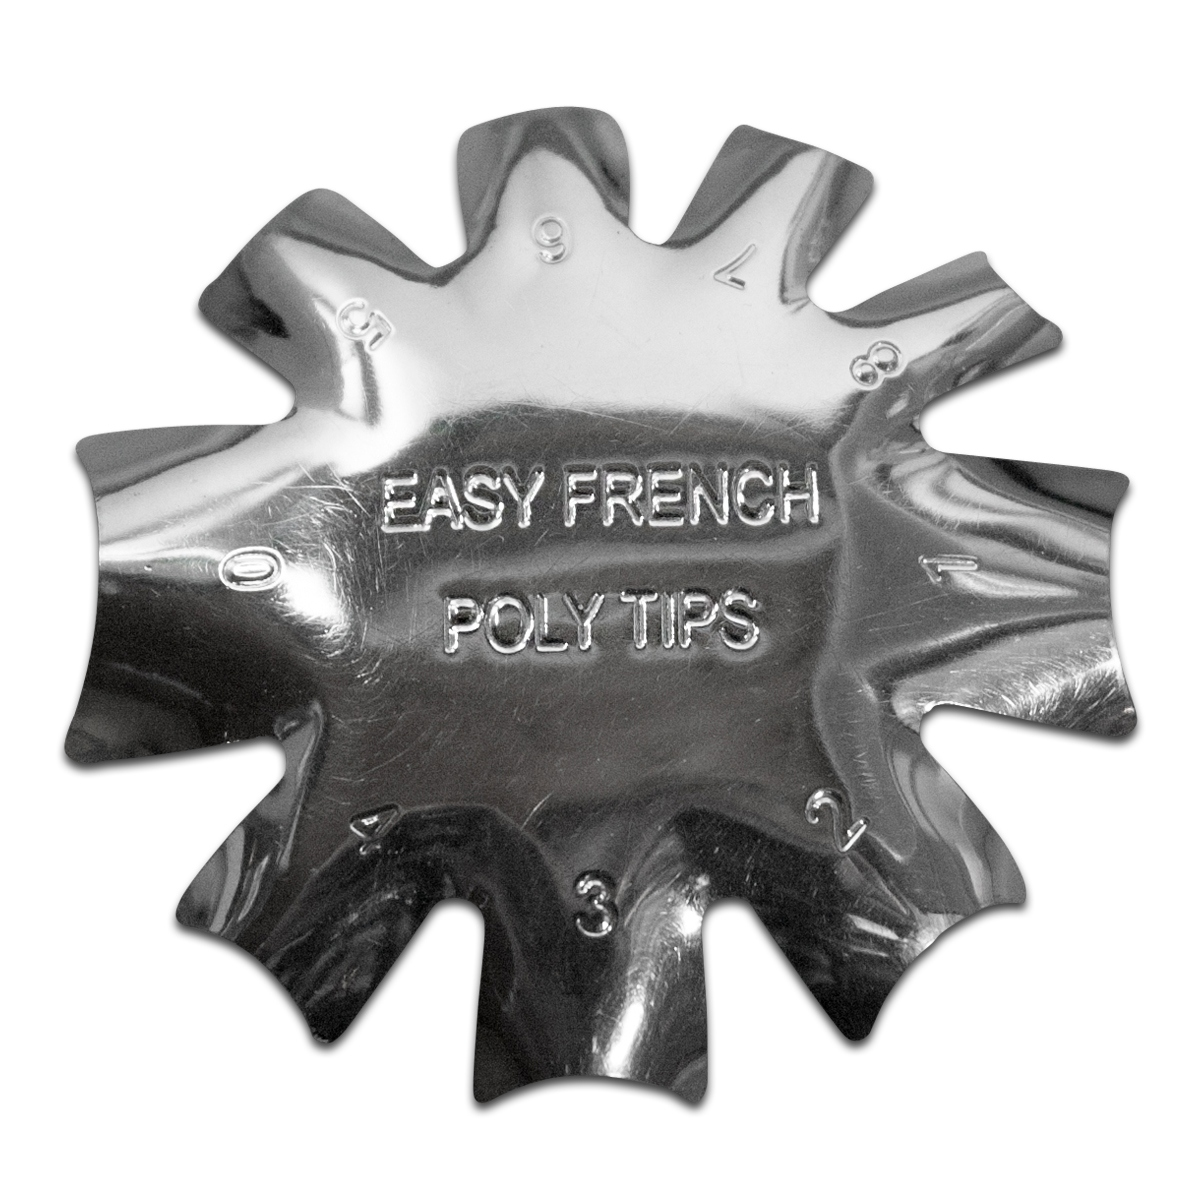 Edge Trimmer Easy French POLY TIPS Schablone Cutter für Acryl Modellage UV Gel